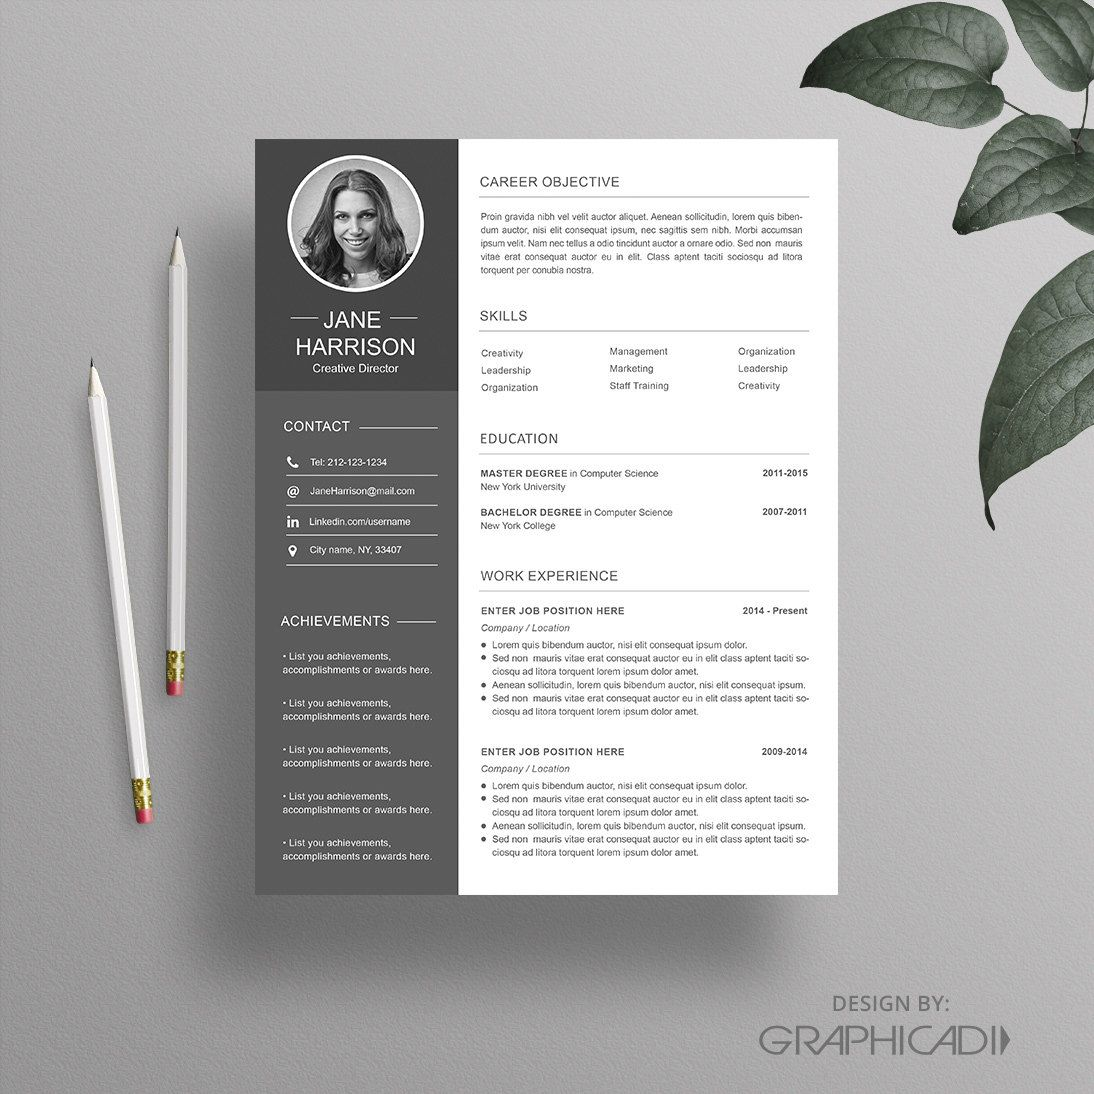 Resume template with cover letter and reference page for